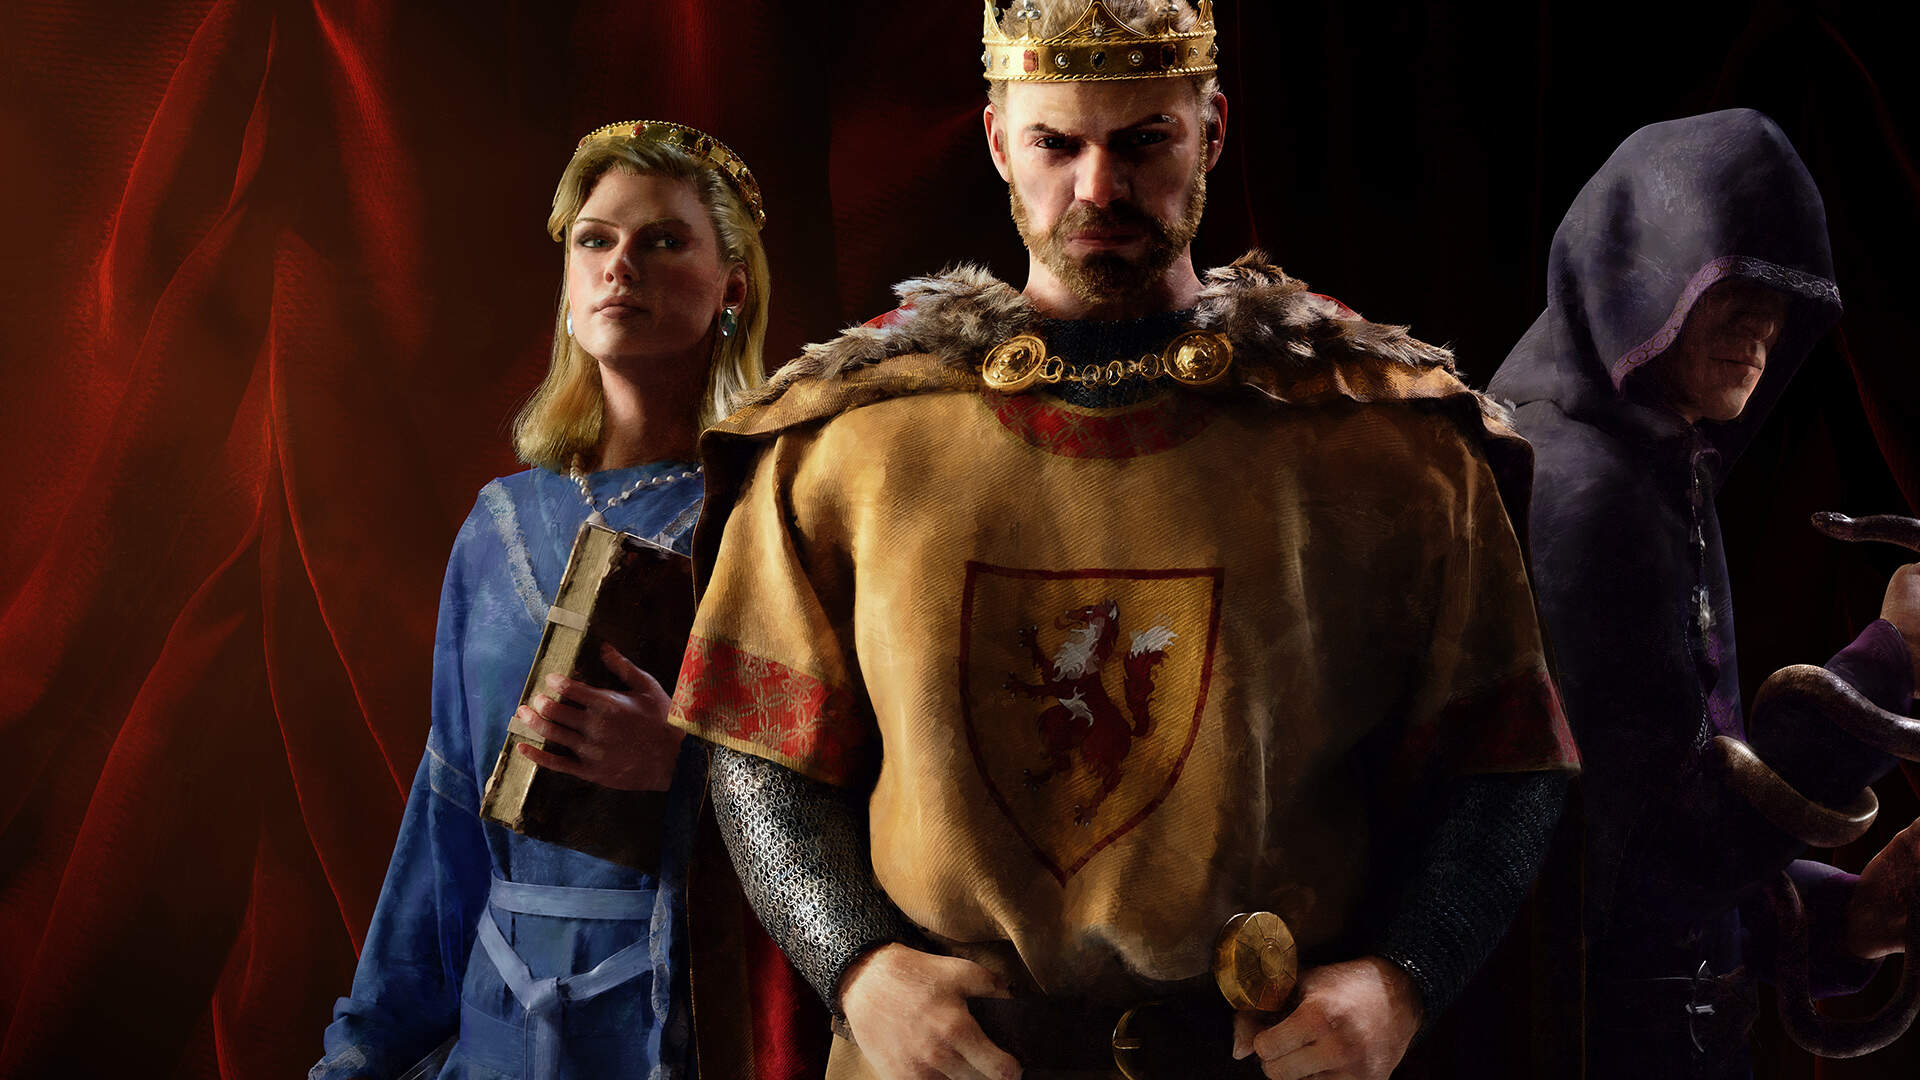 How Crusader Kings 3 Plans to Attract Fans of RPGs, Sandbox Games, and The Sims